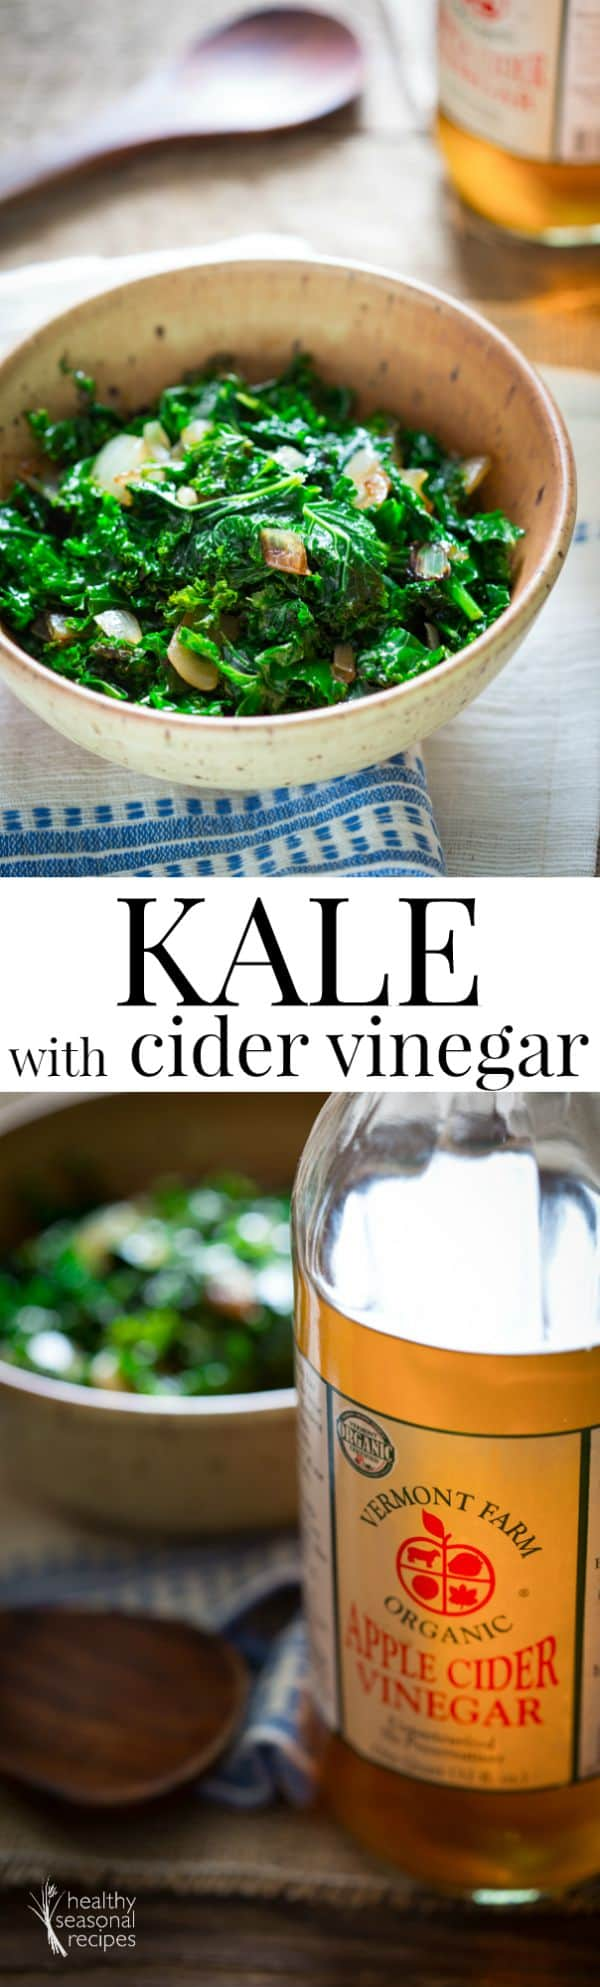 This sauteed kale with cider vinegar is super easy. Just saute onions and kale, then wilt with water, and add the vinegar at the end! Gluten-free and paleo. #kale #onion #ACV #vinegar #healthy #sidedish #glutenfree #vegan #paleo #vegetarian